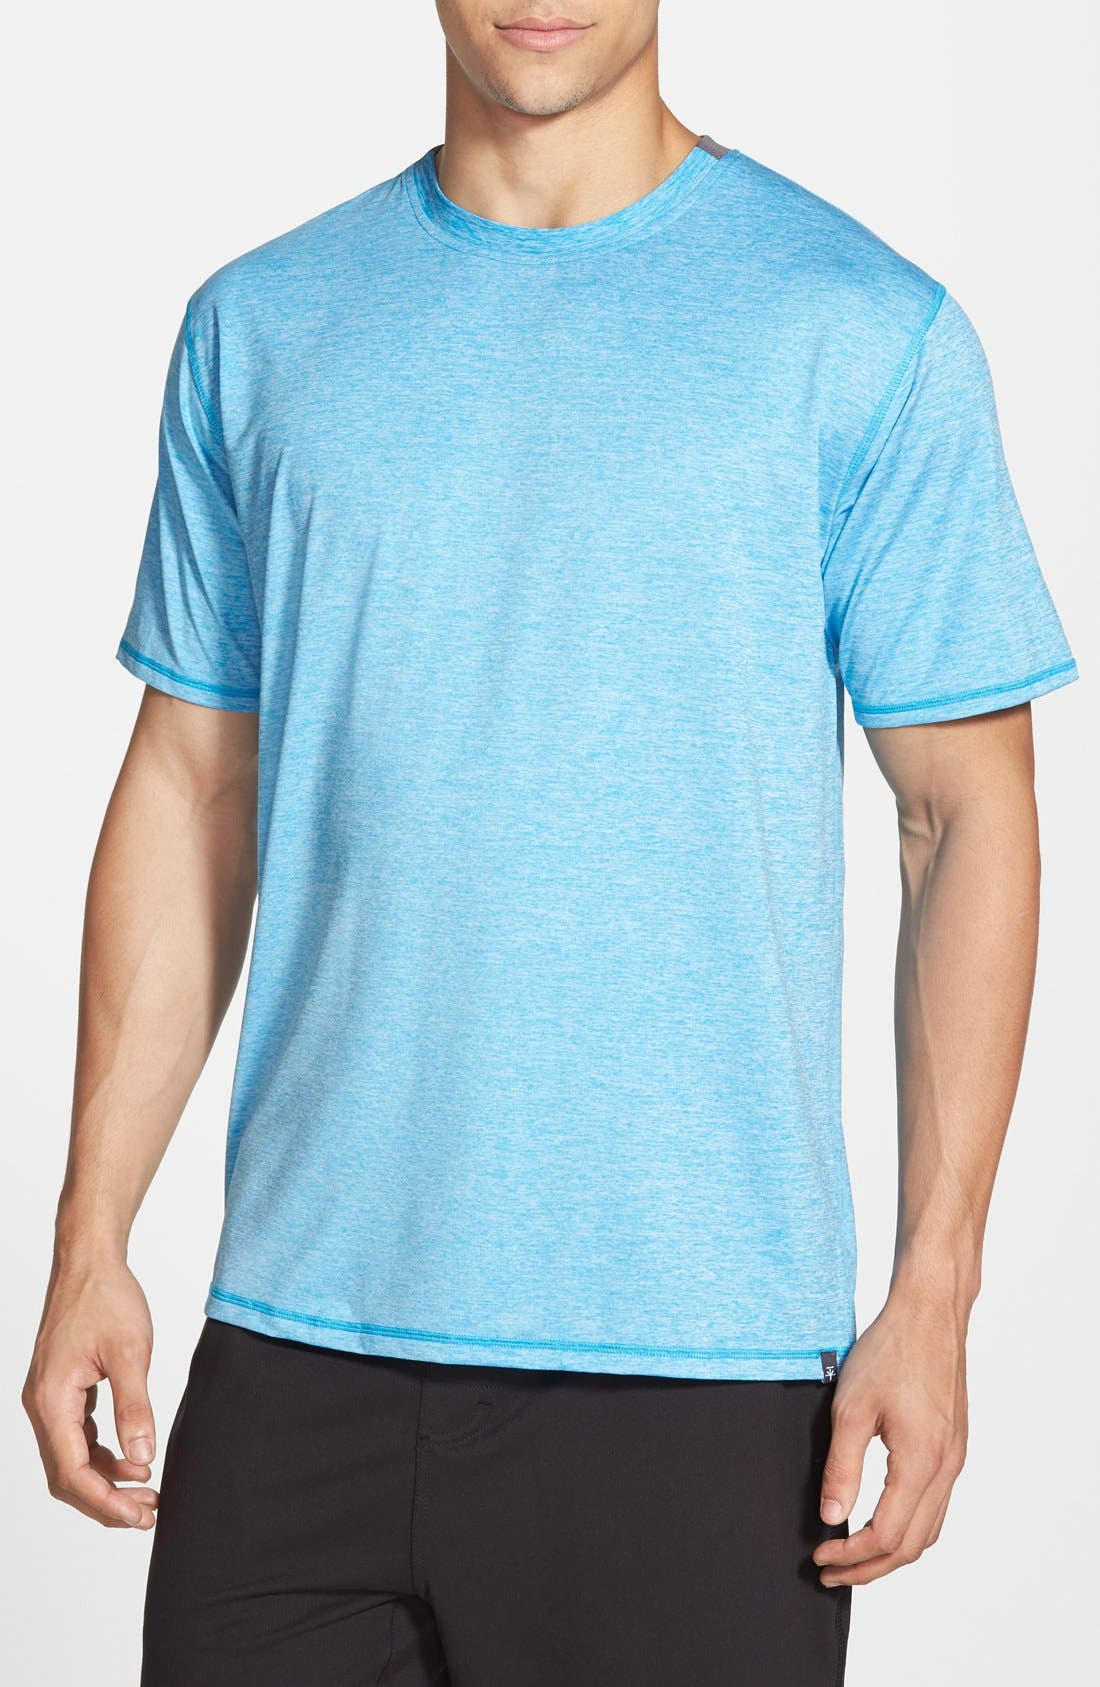 SOYBU™ 'Levity' Moisture Wicking Stretch T-Shirt